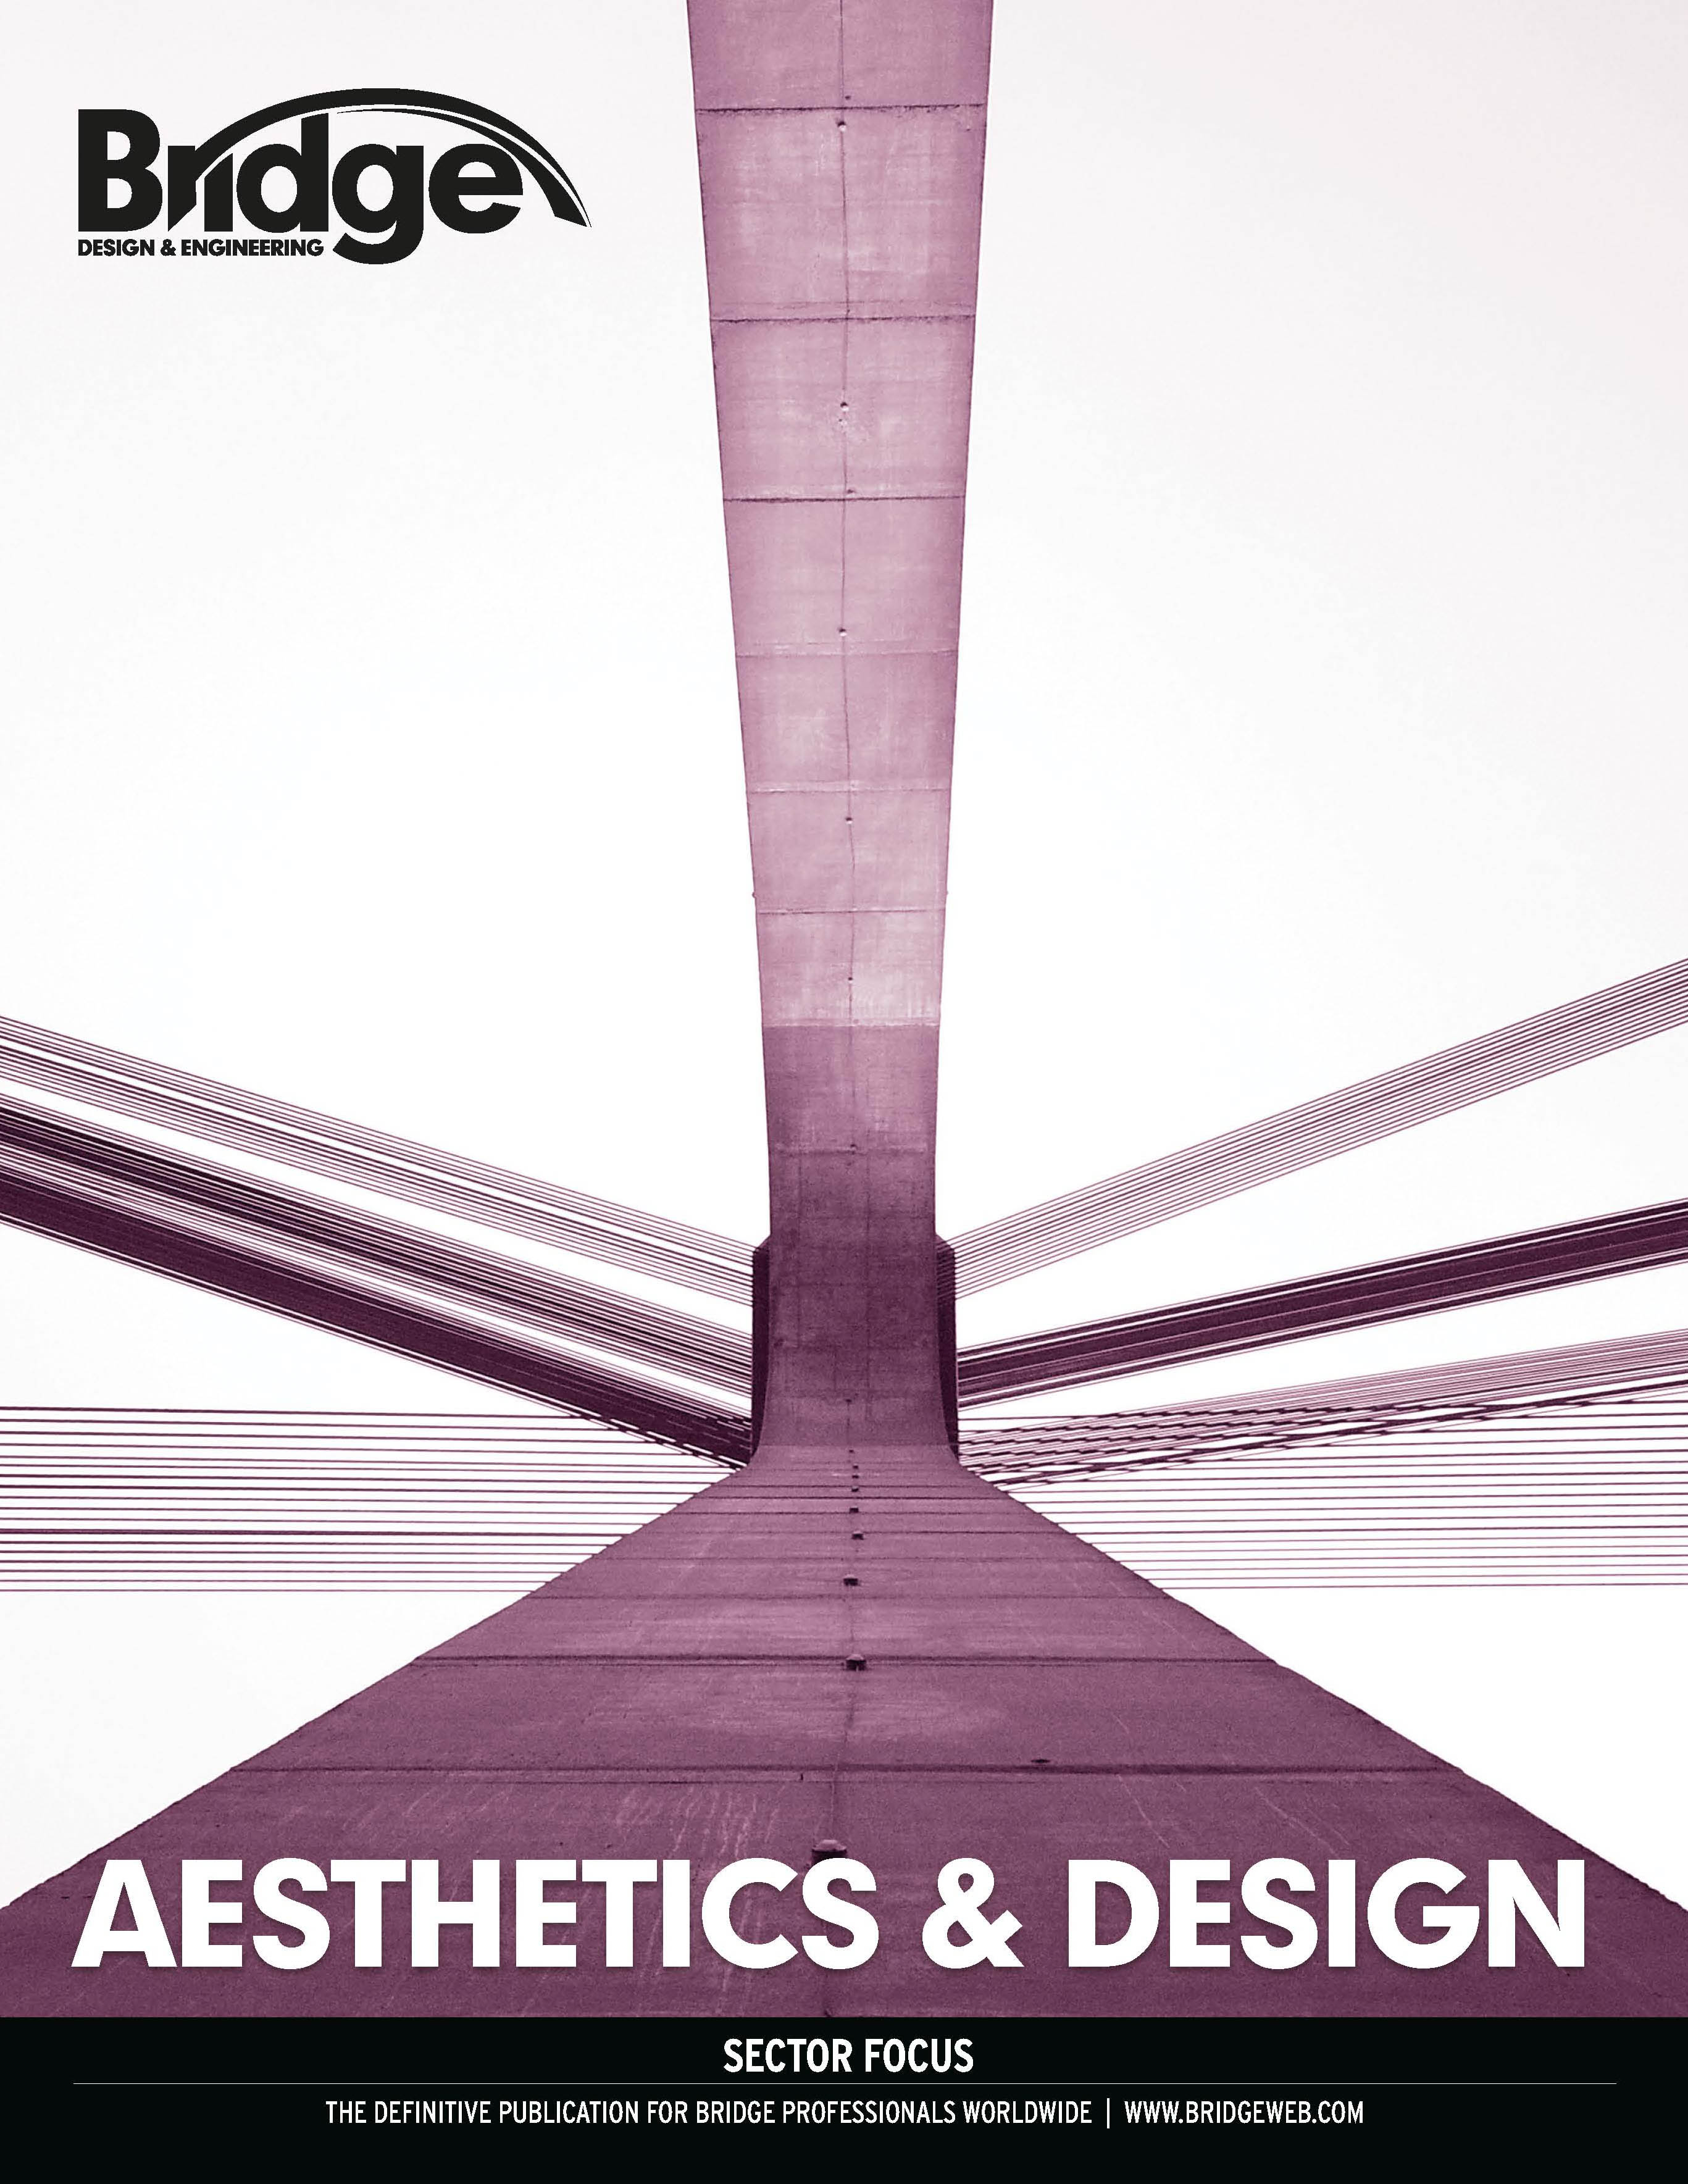 Aesthetics & design